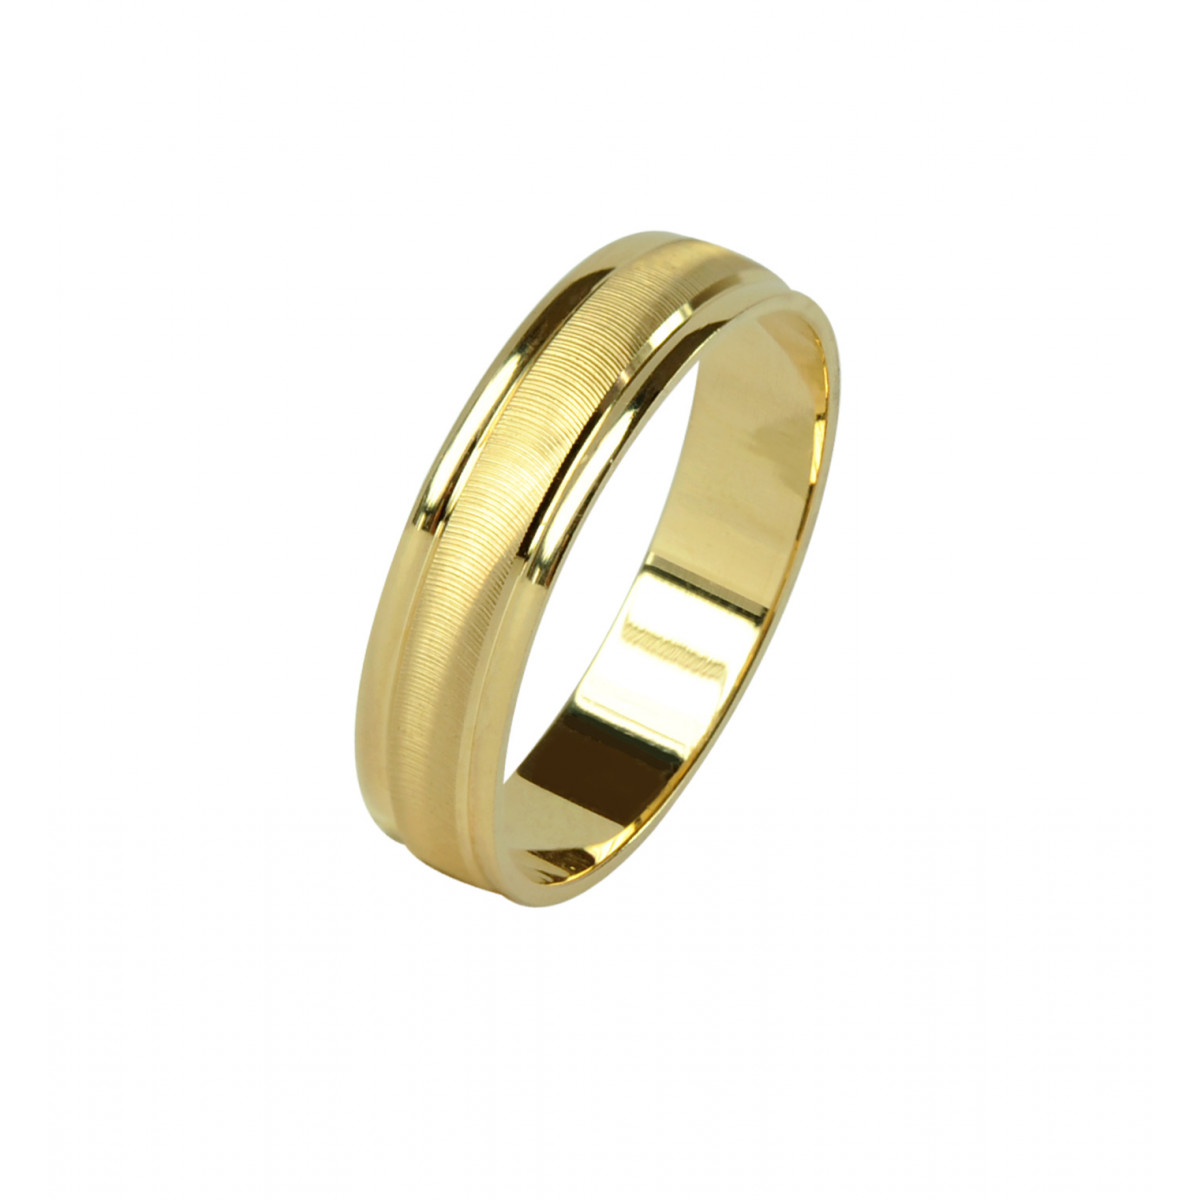 Simple Wedding Ring.Simple Wedding Ring Bergamo In Gold 18k Bijoux Prives Discovery